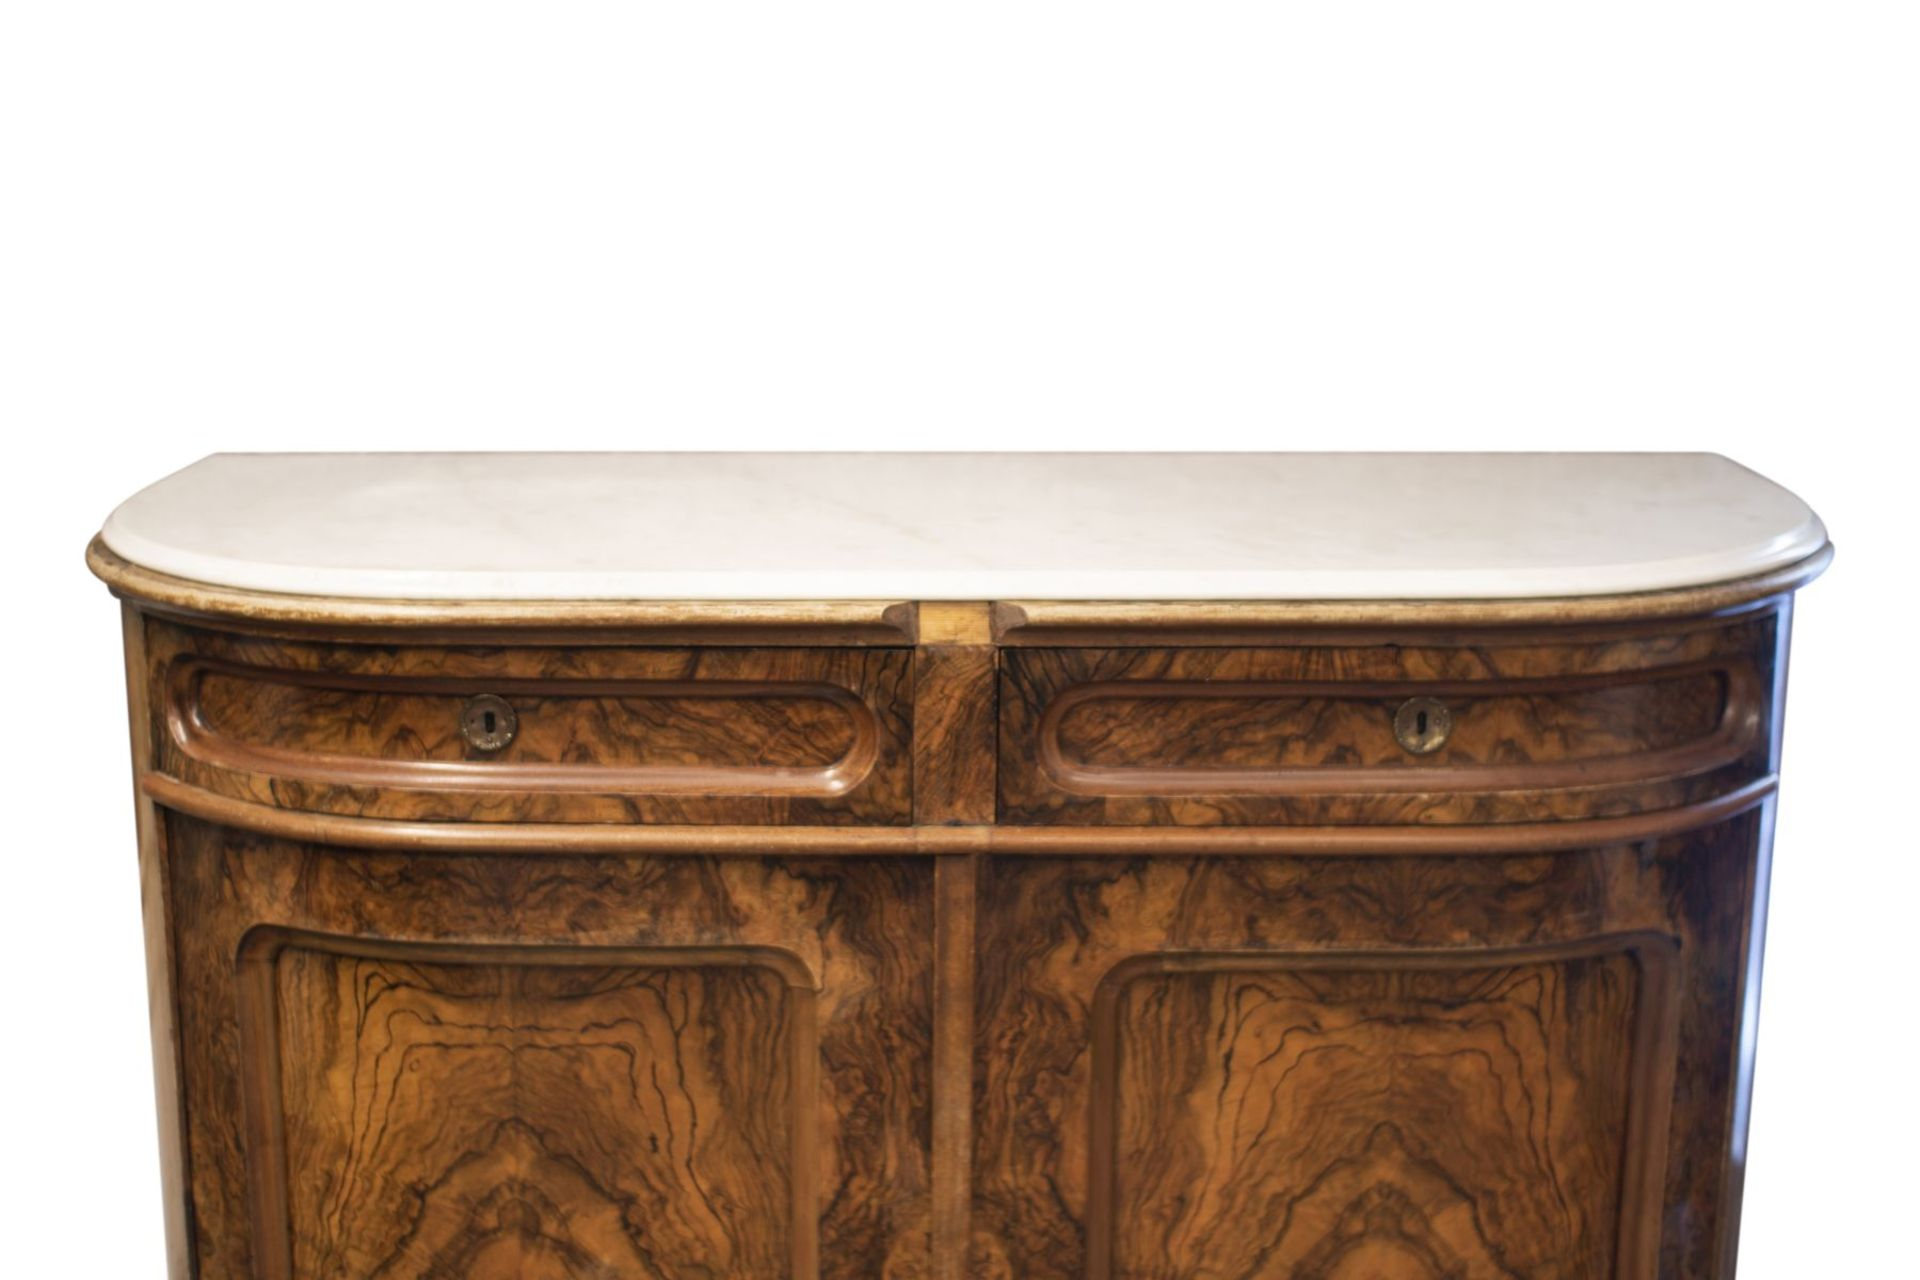 Salon chest of drawers with profiled marble top - Image 3 of 6